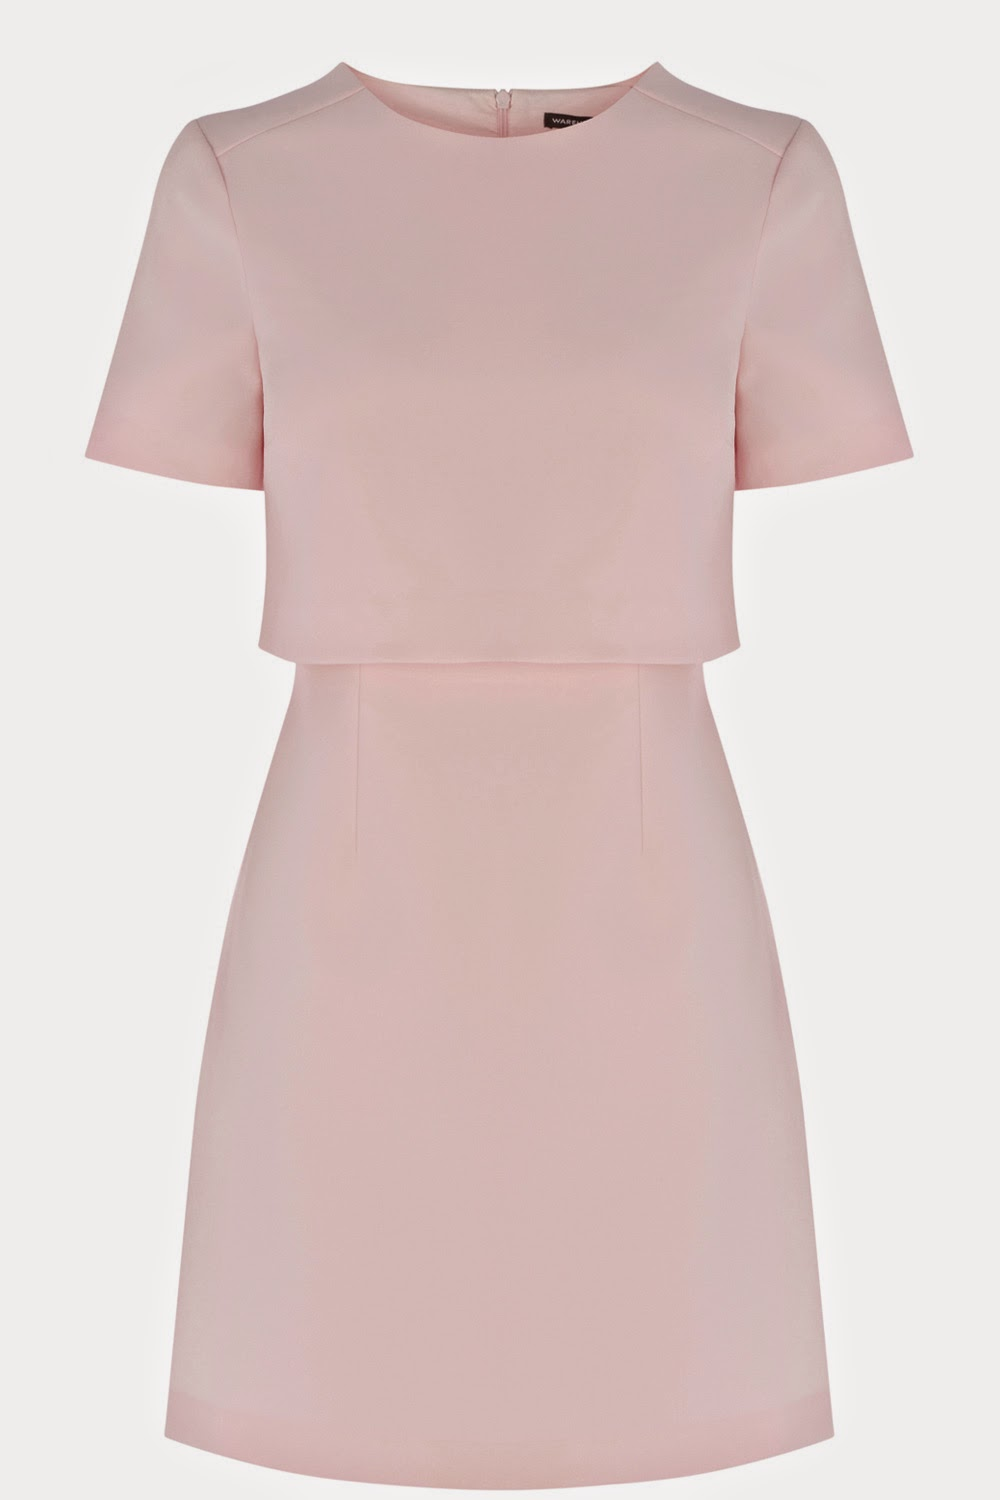 warehouse pastel pink dress